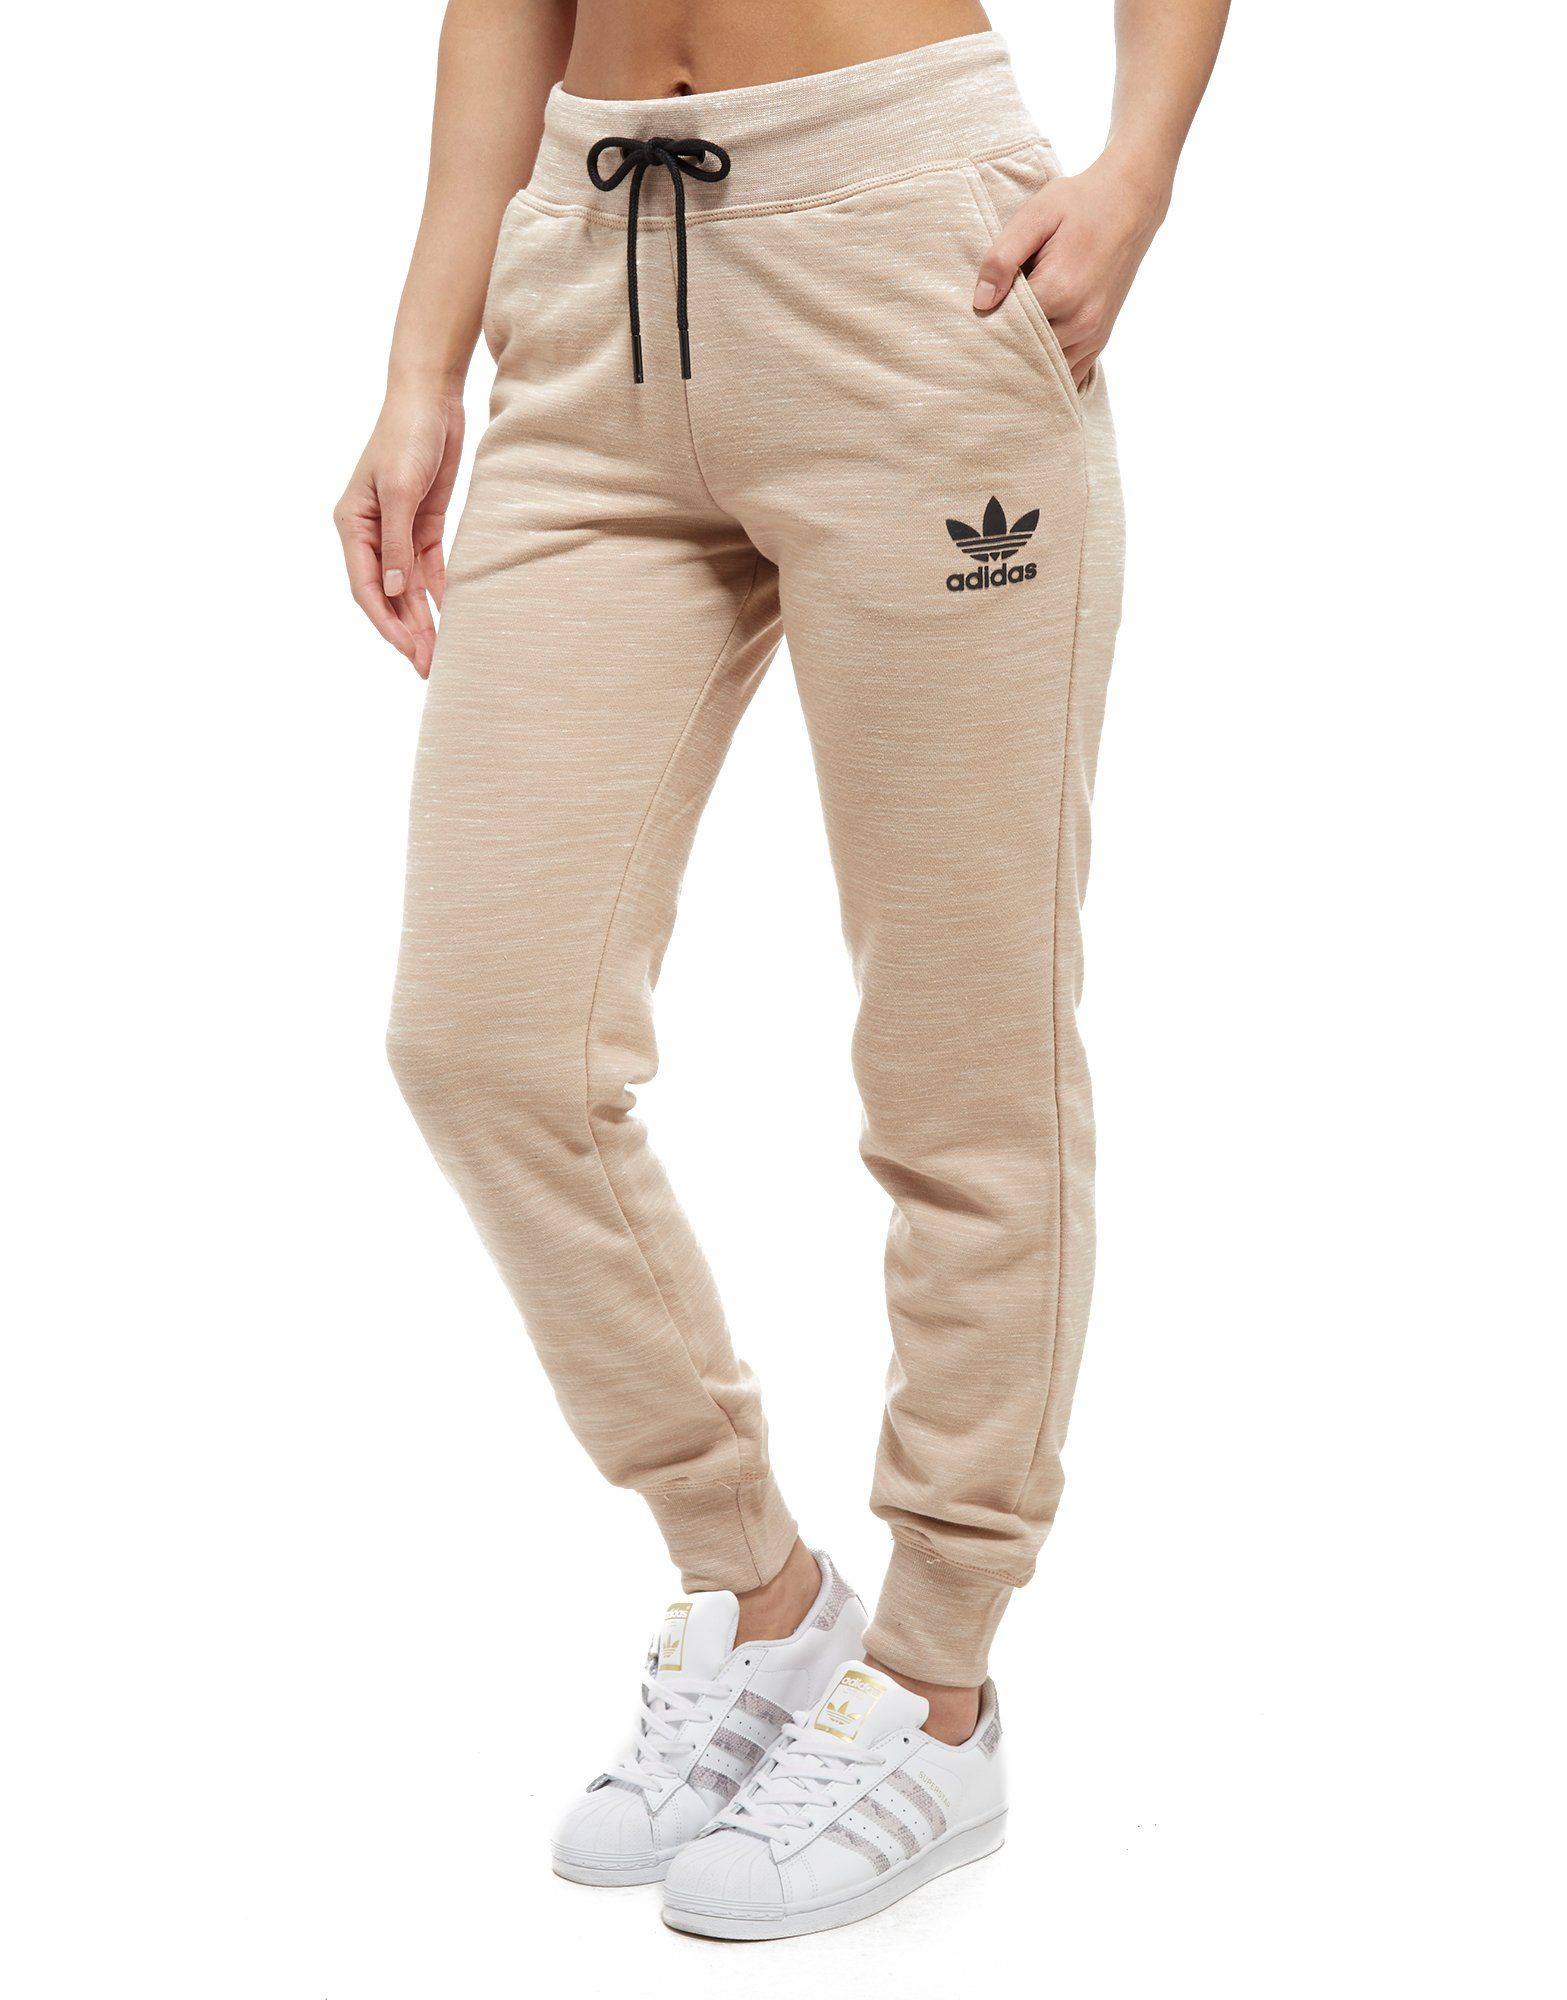 adidas originals pantalon premium spacedye femme jd sports. Black Bedroom Furniture Sets. Home Design Ideas